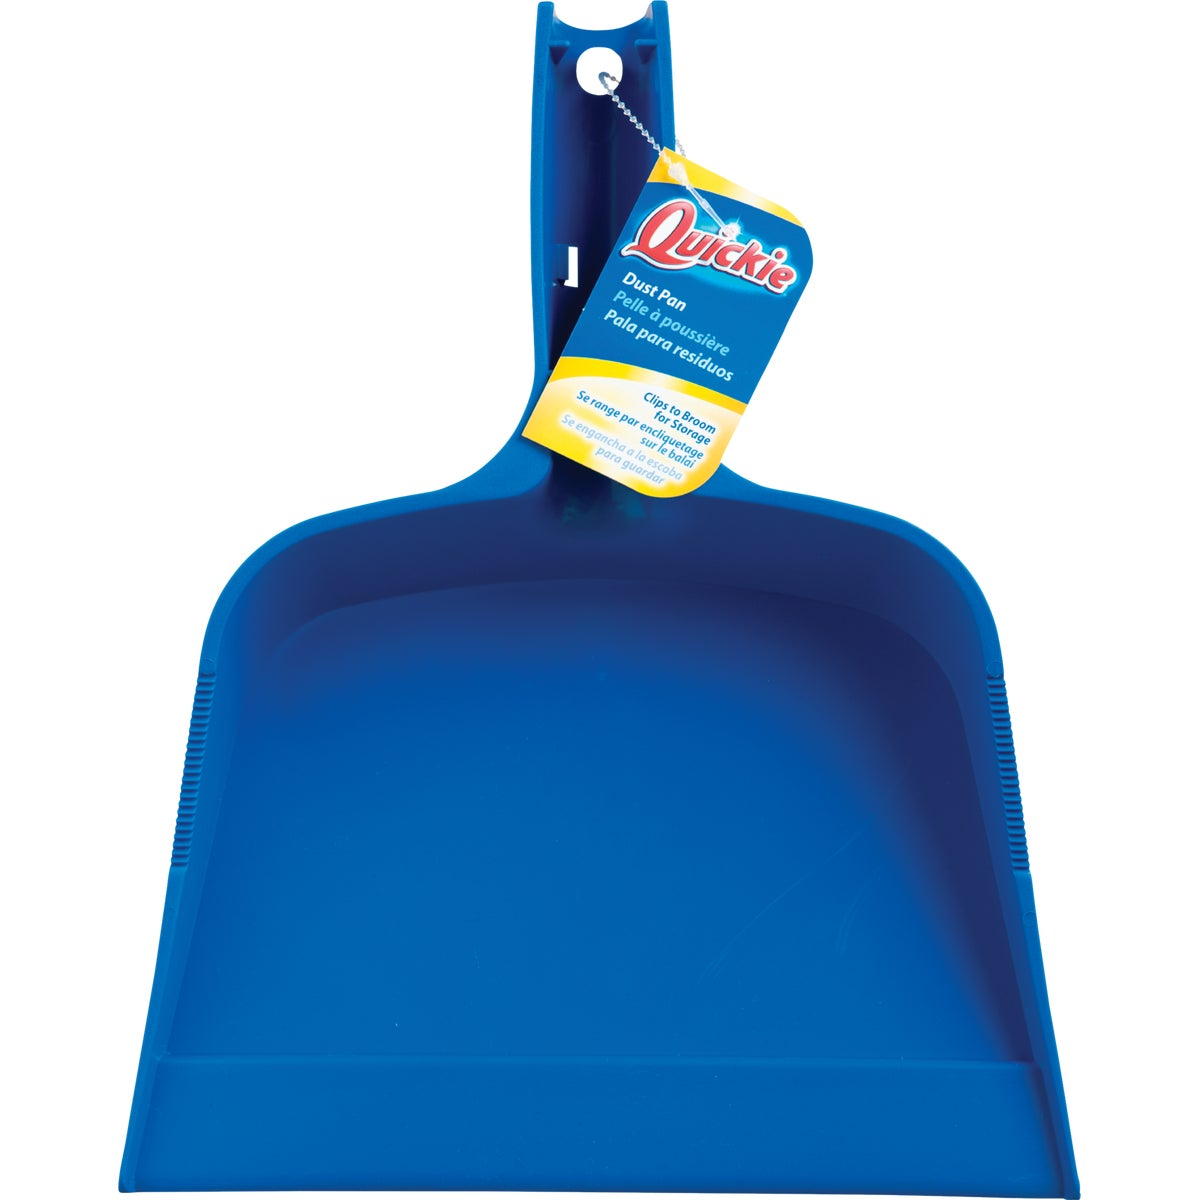 ALMOND DUSTPAN - G163-06 by Rubbermaid Home